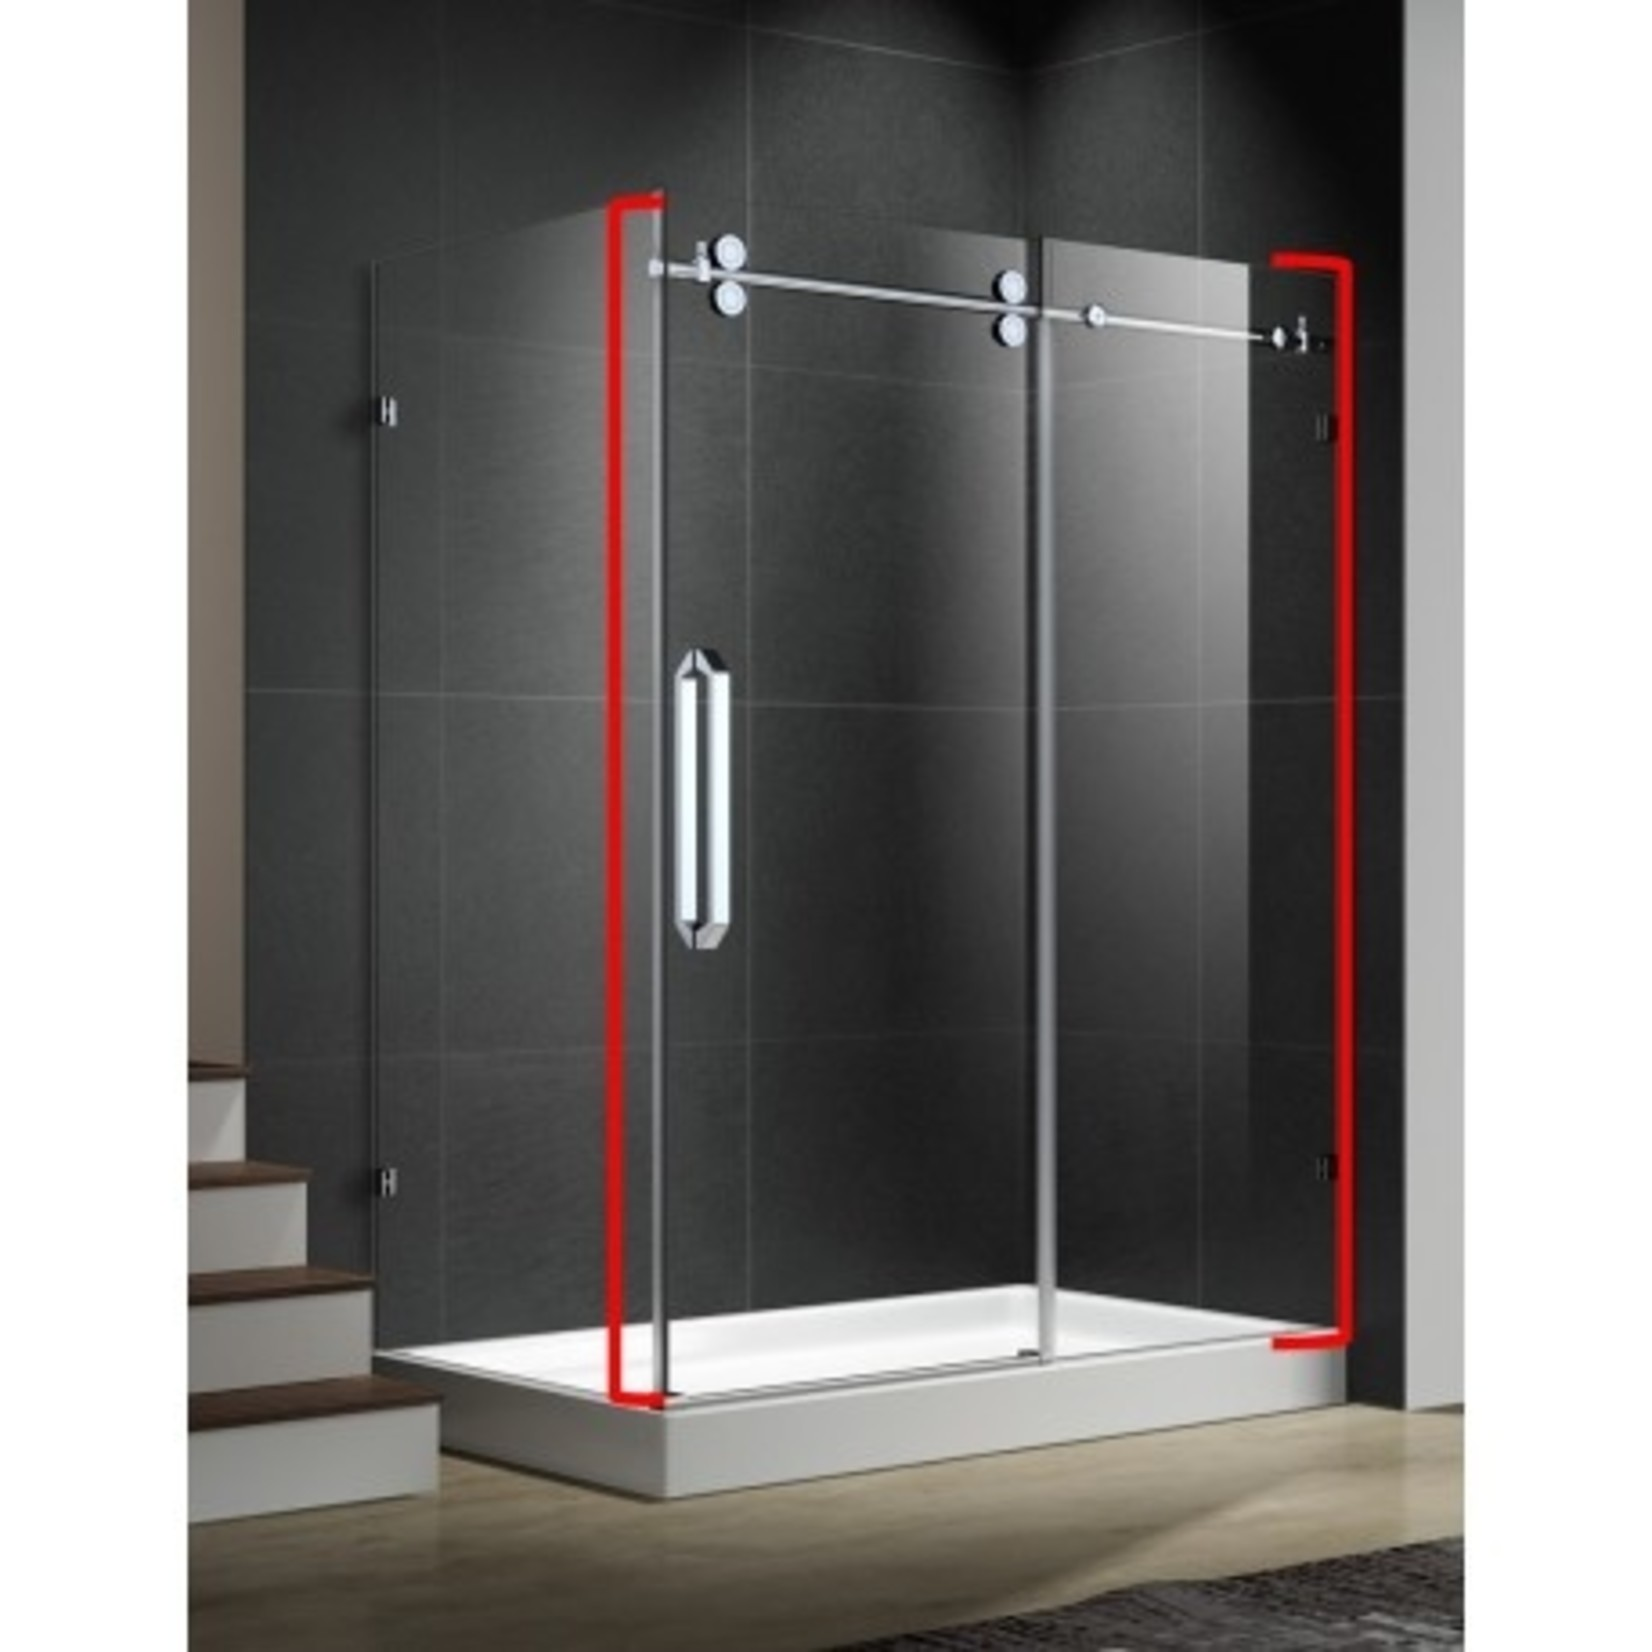 Reversible shower door 60 '' chrome 10mm Zirkon Apo series